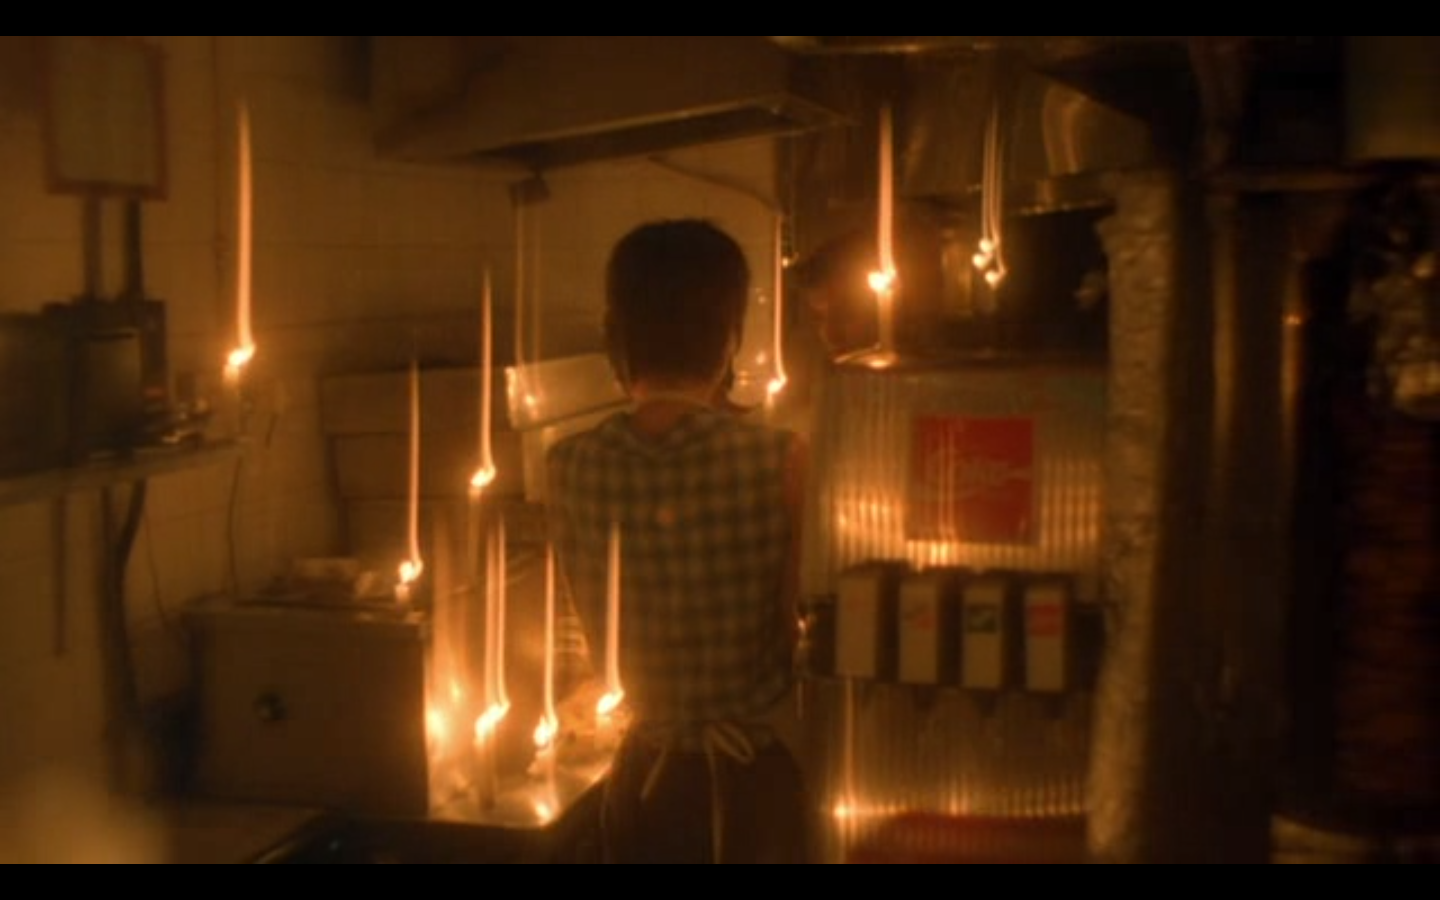 essays on chunking express Chungking express (1994), dir wong kar-wai: how does this example of asian screen content represent contemporary cultures and identities.